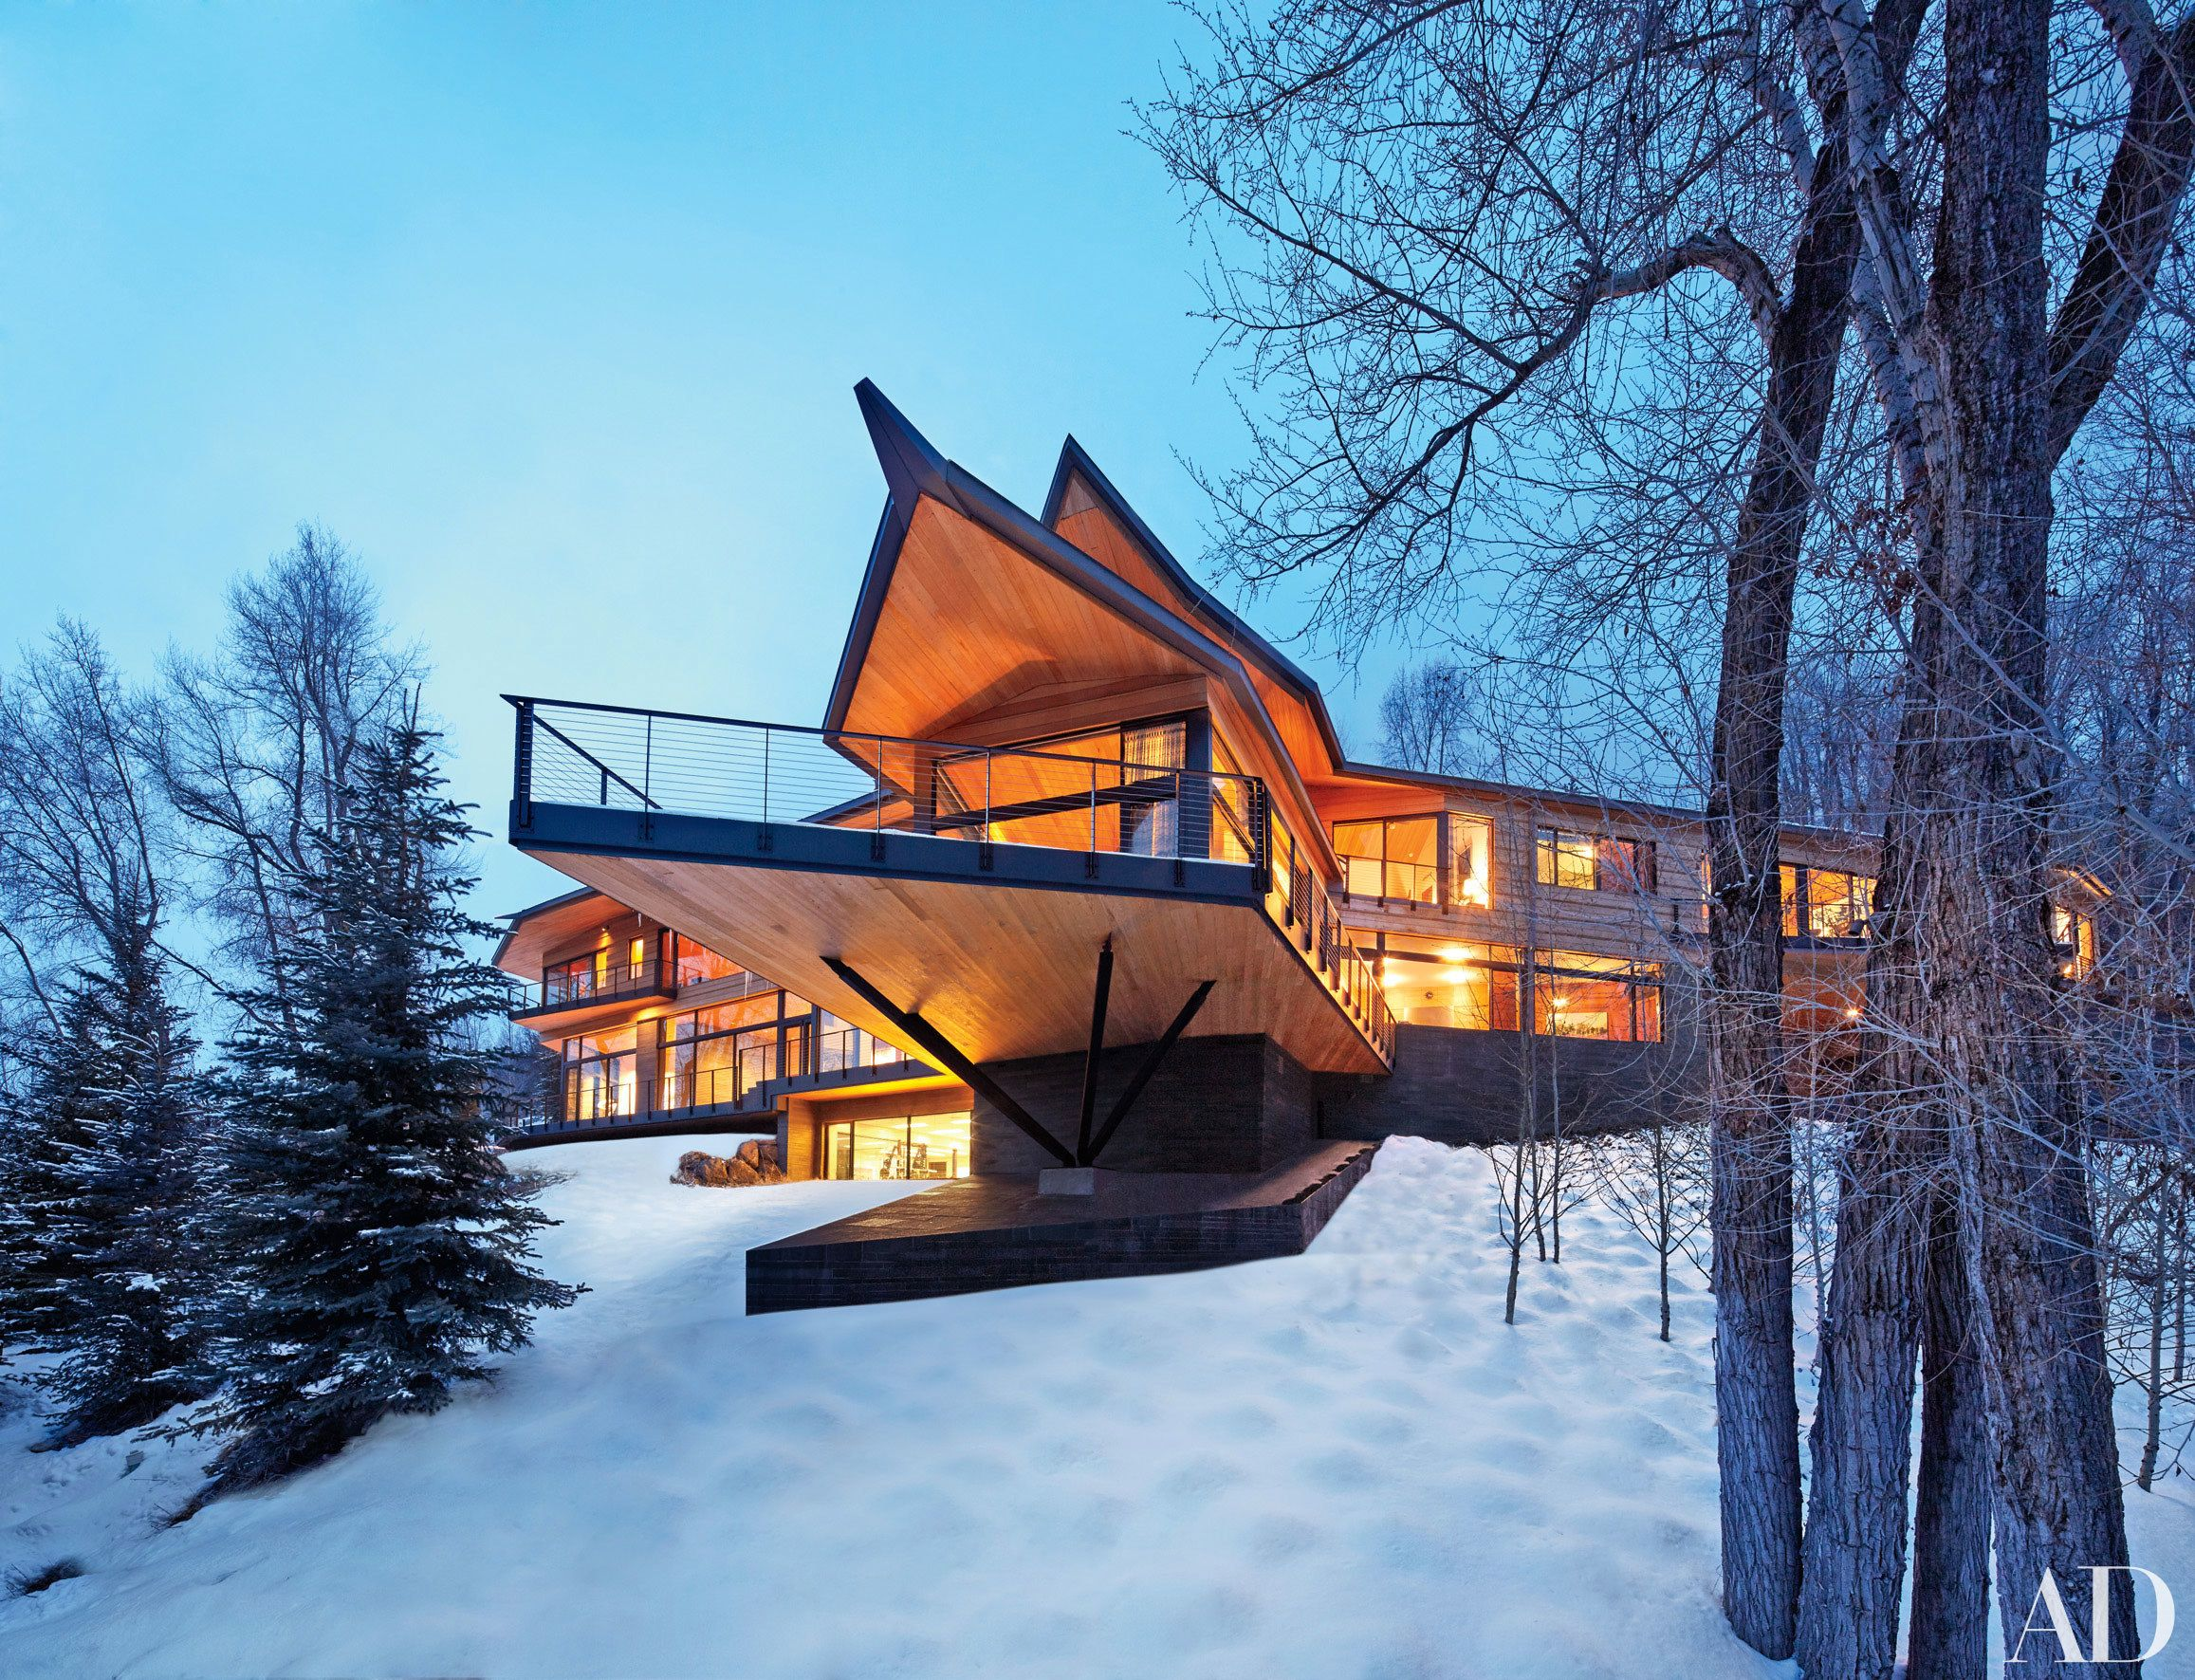 Architect Peter Marinou0027s Rocky Mountain Chalet | Architectural Digest